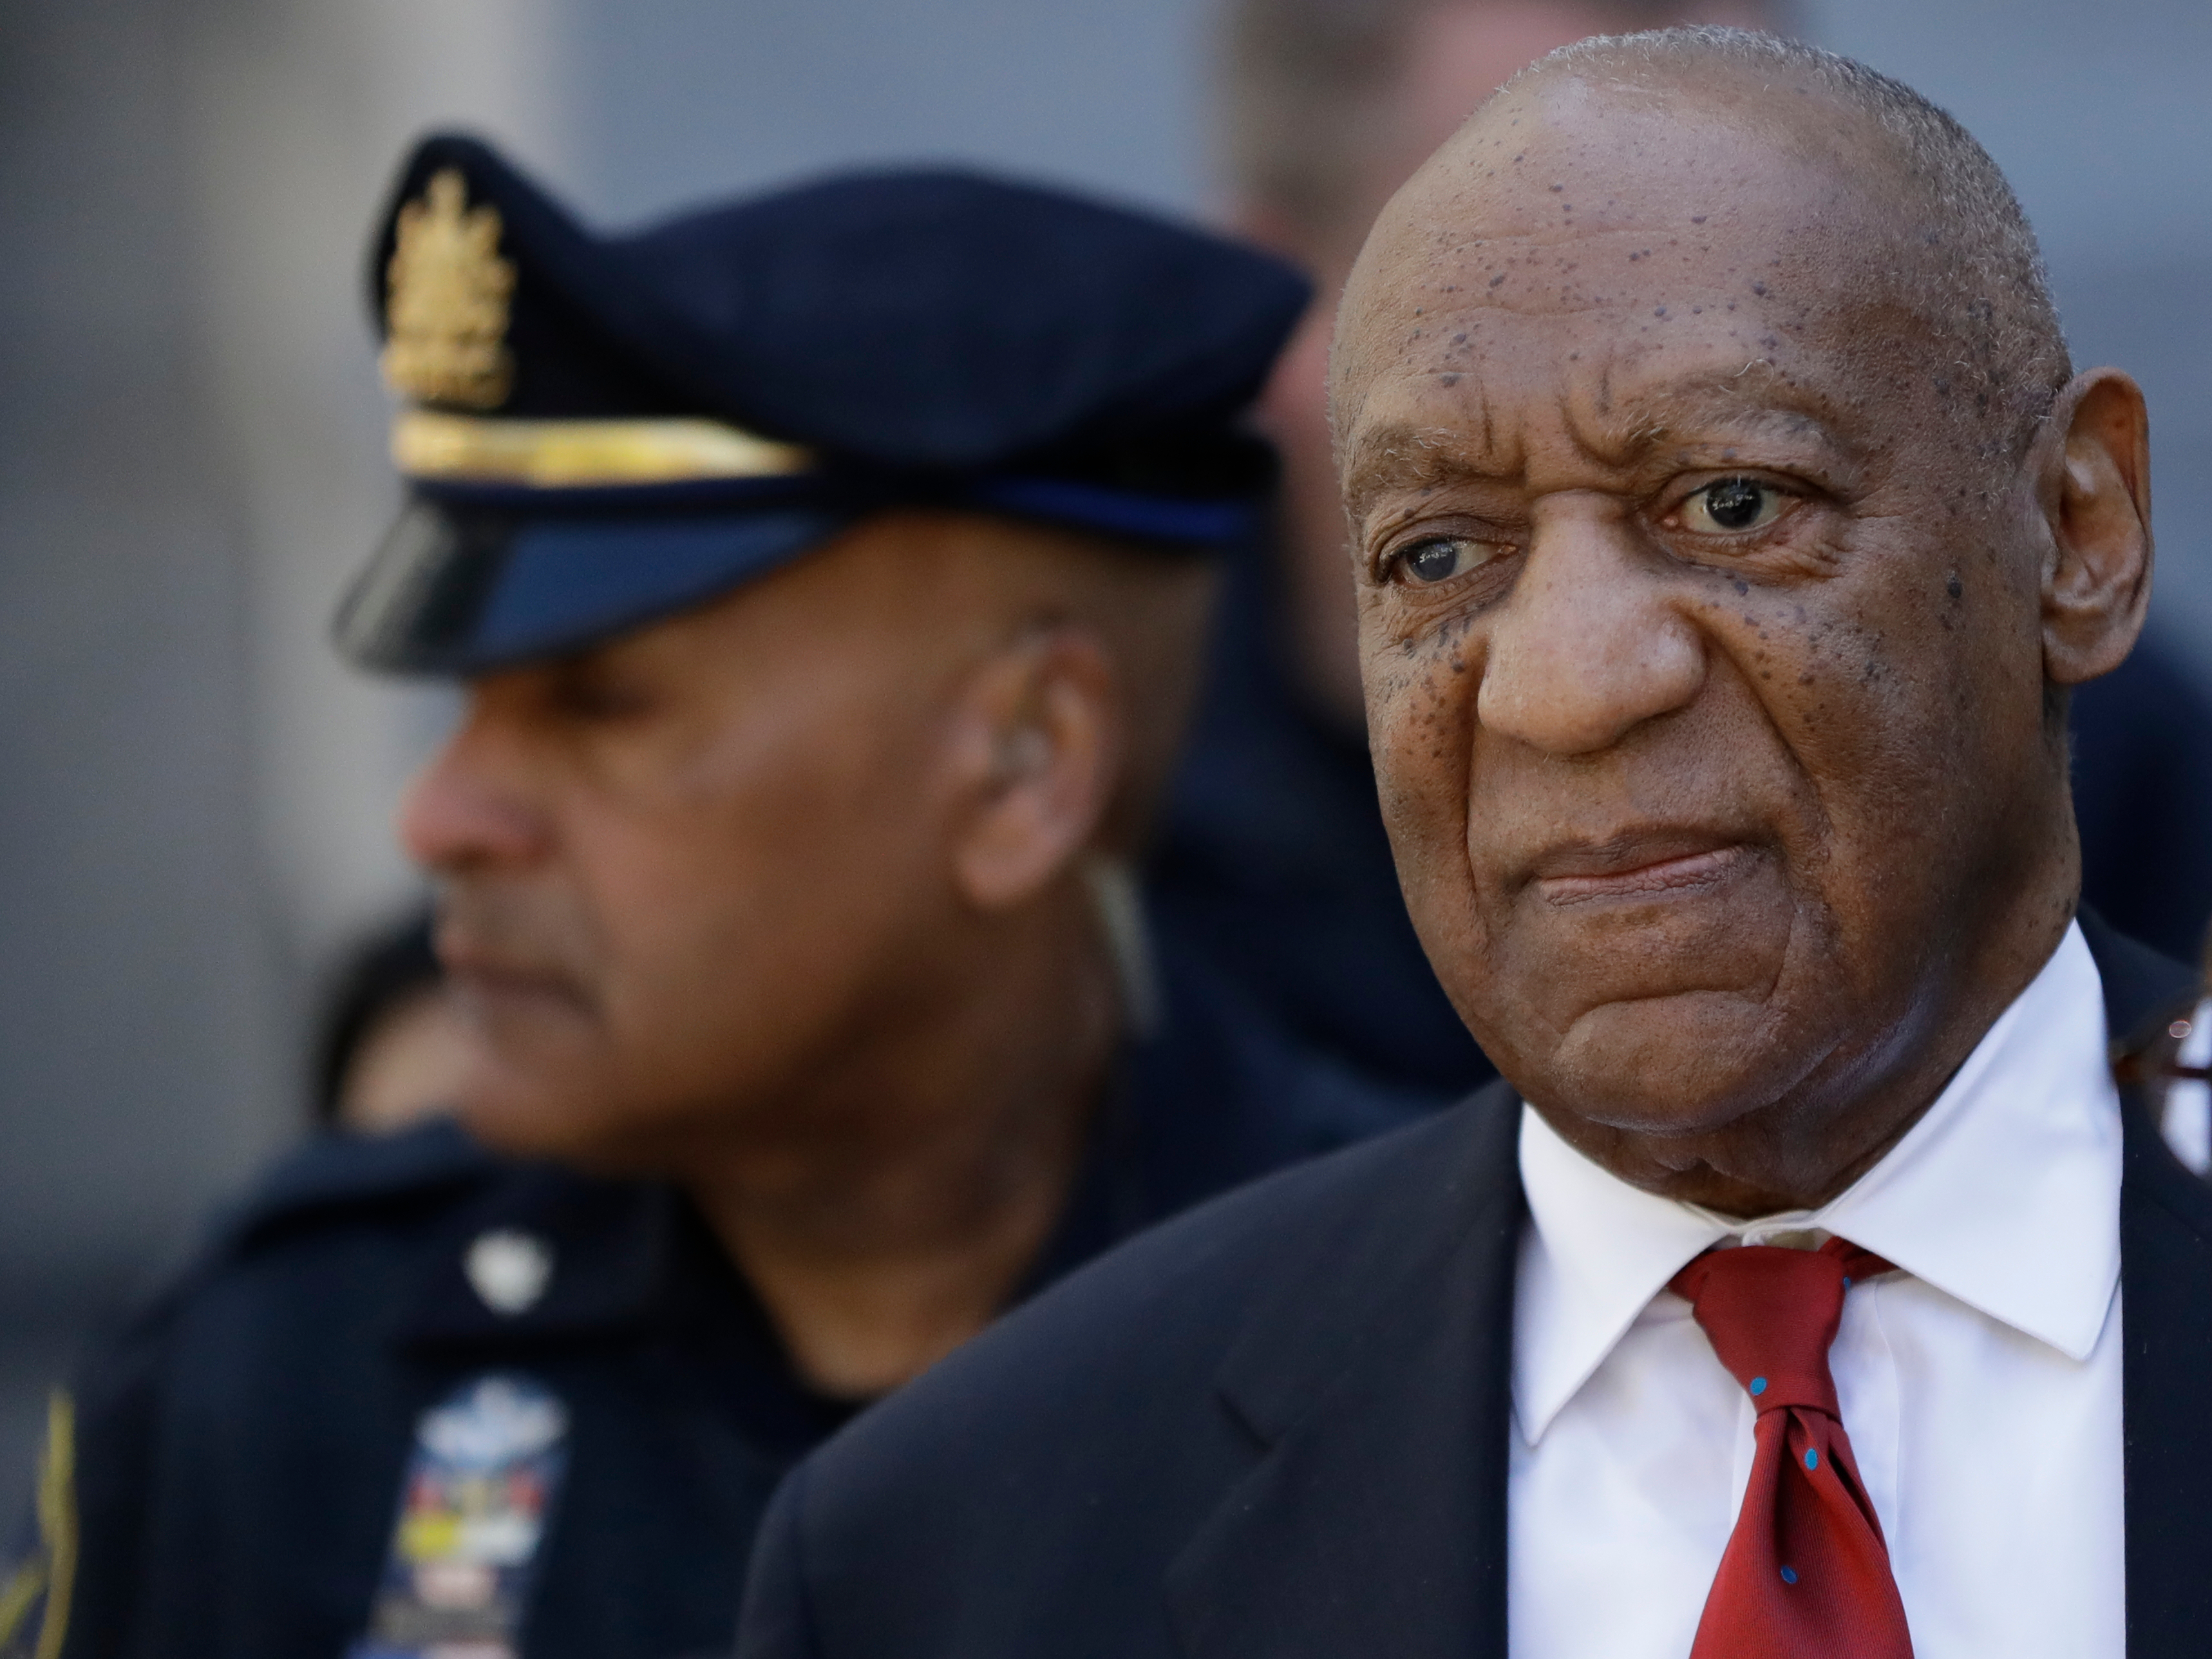 Jury: Bill Cosby Guilty on All Counts